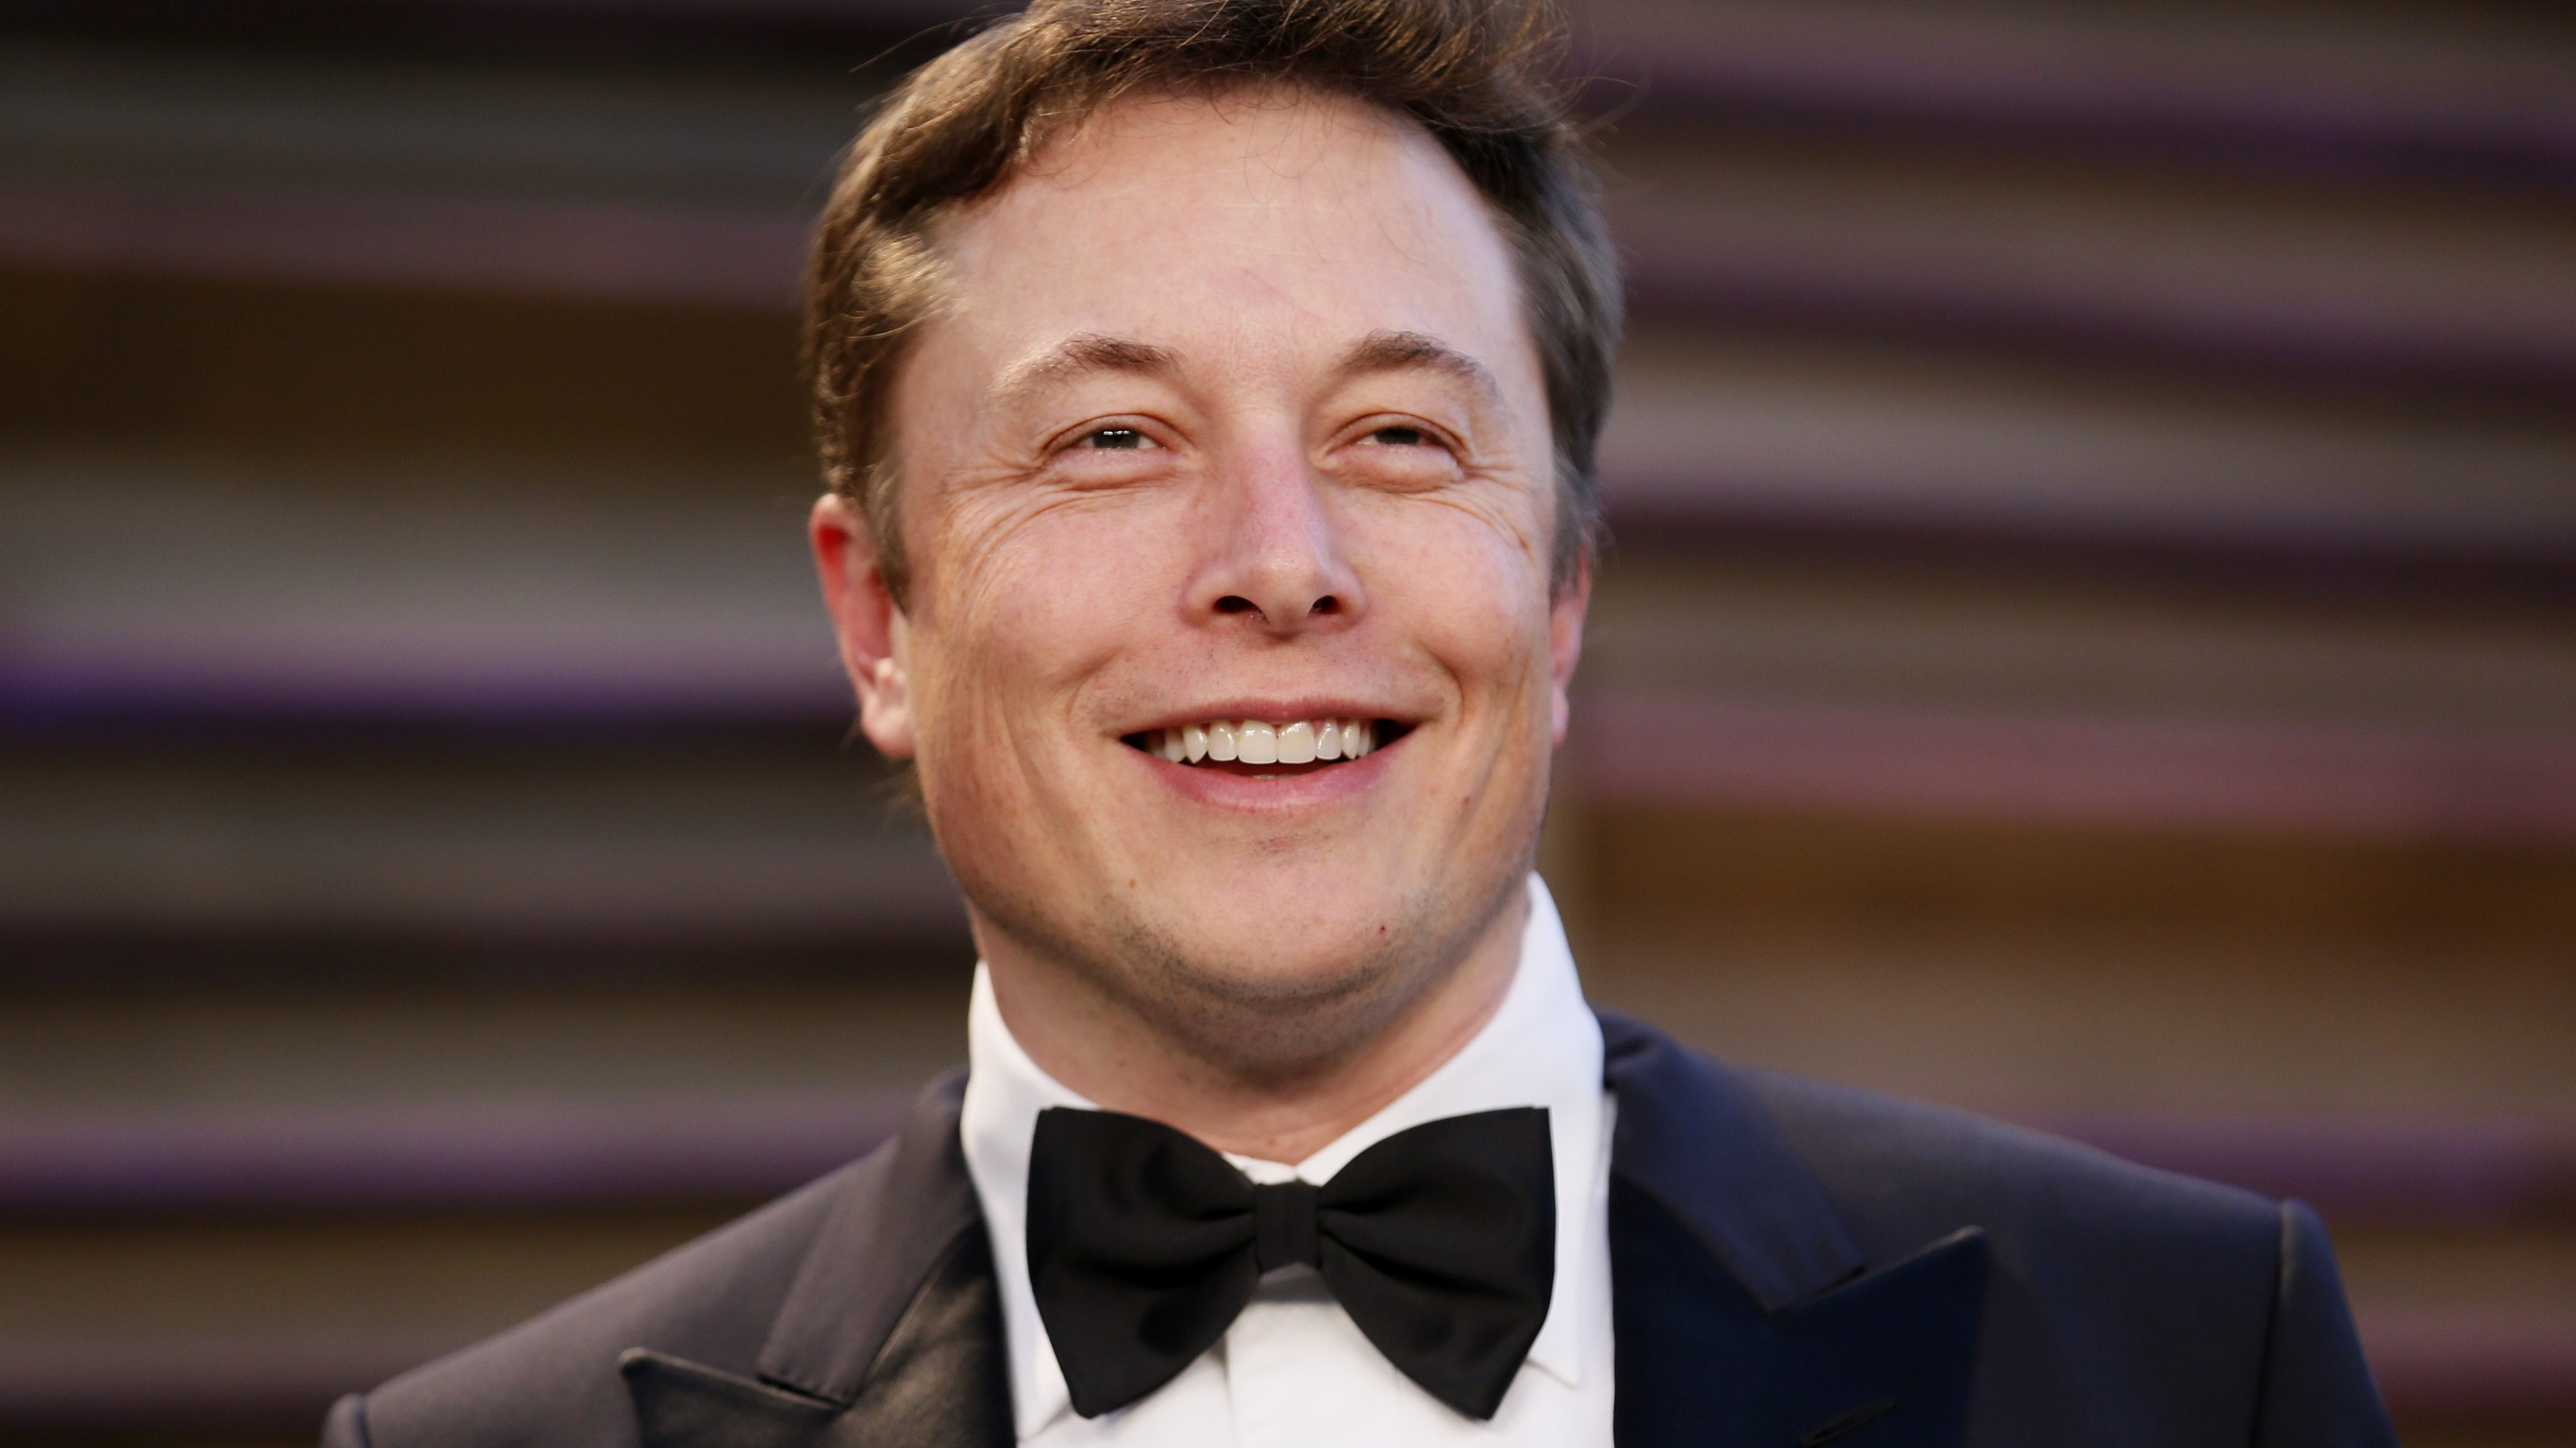 Chief Executive of SpaceX and Tesla Motors Elon Musk arrives at the 2014 Vanity Fair Oscars Party in West Hollywood, California March 2, 2014. REUTERS/Danny Moloshok (UNITED STATES - Tags: ENTERTAINMENT BUSINESS HEADSHOT)(OSCARS-PARTIES)